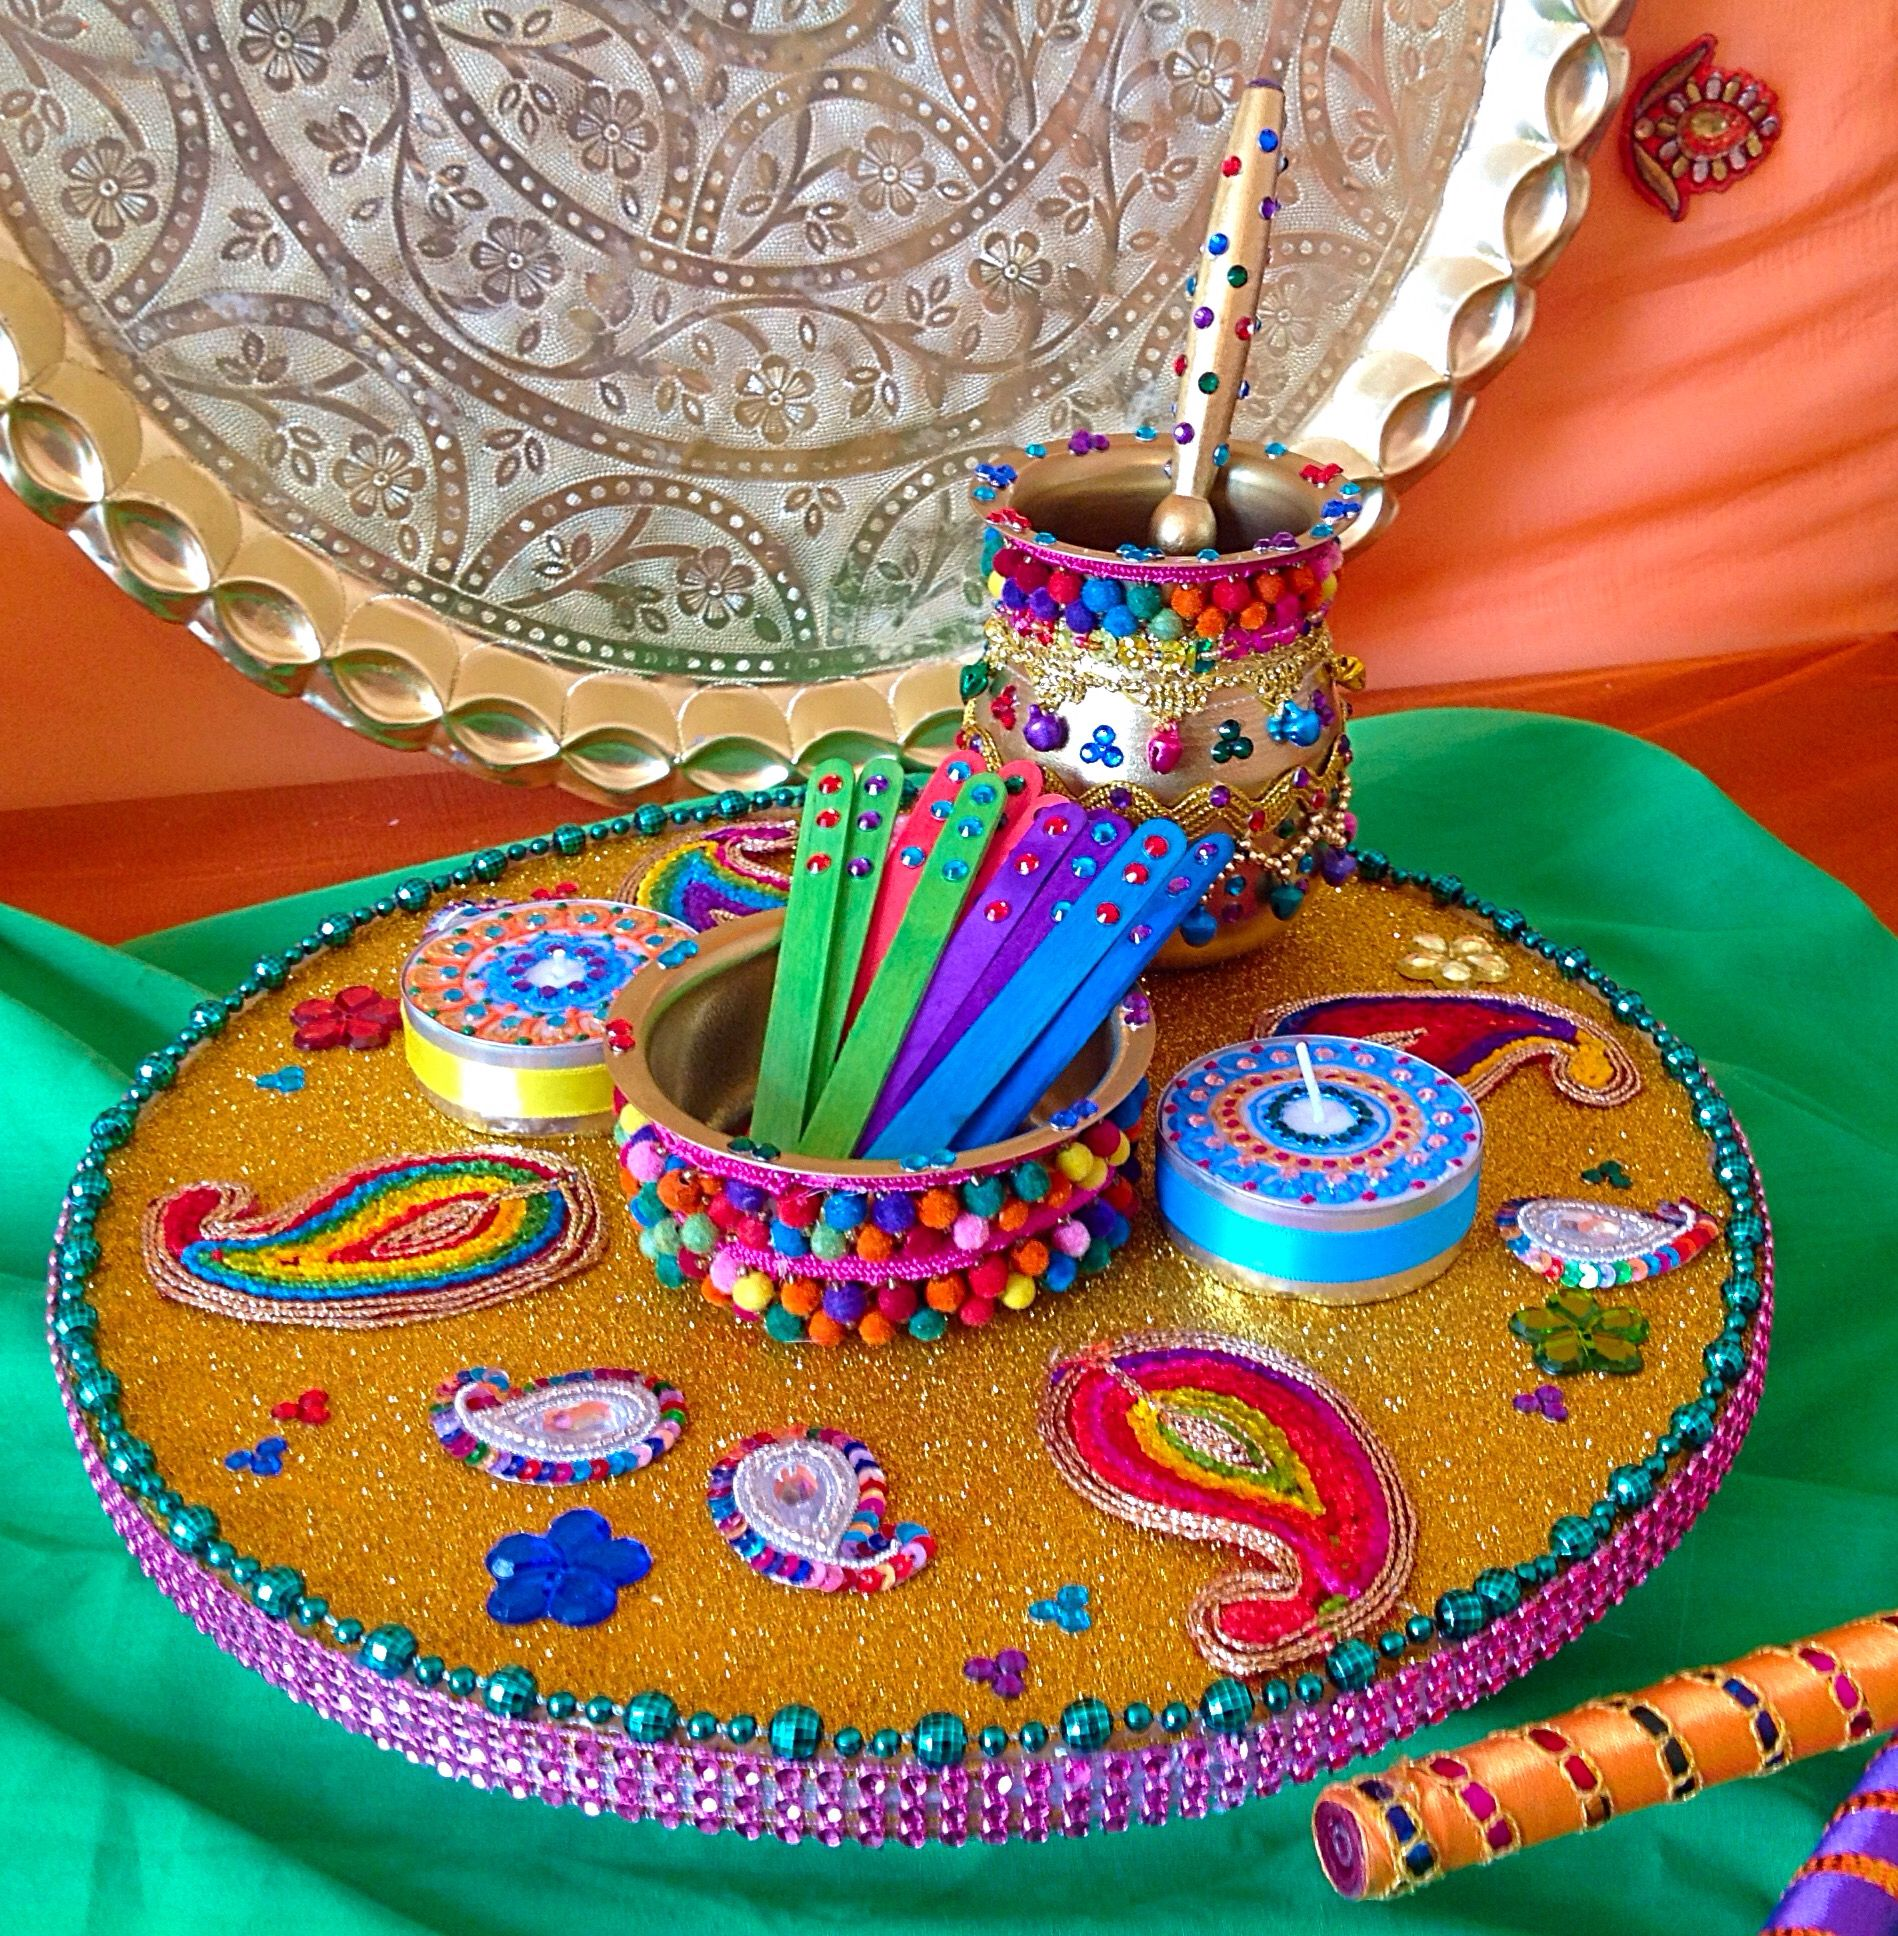 Mehndi Thaal Decoration Facebook : Multi coloured mehndi plate with oil and pots see